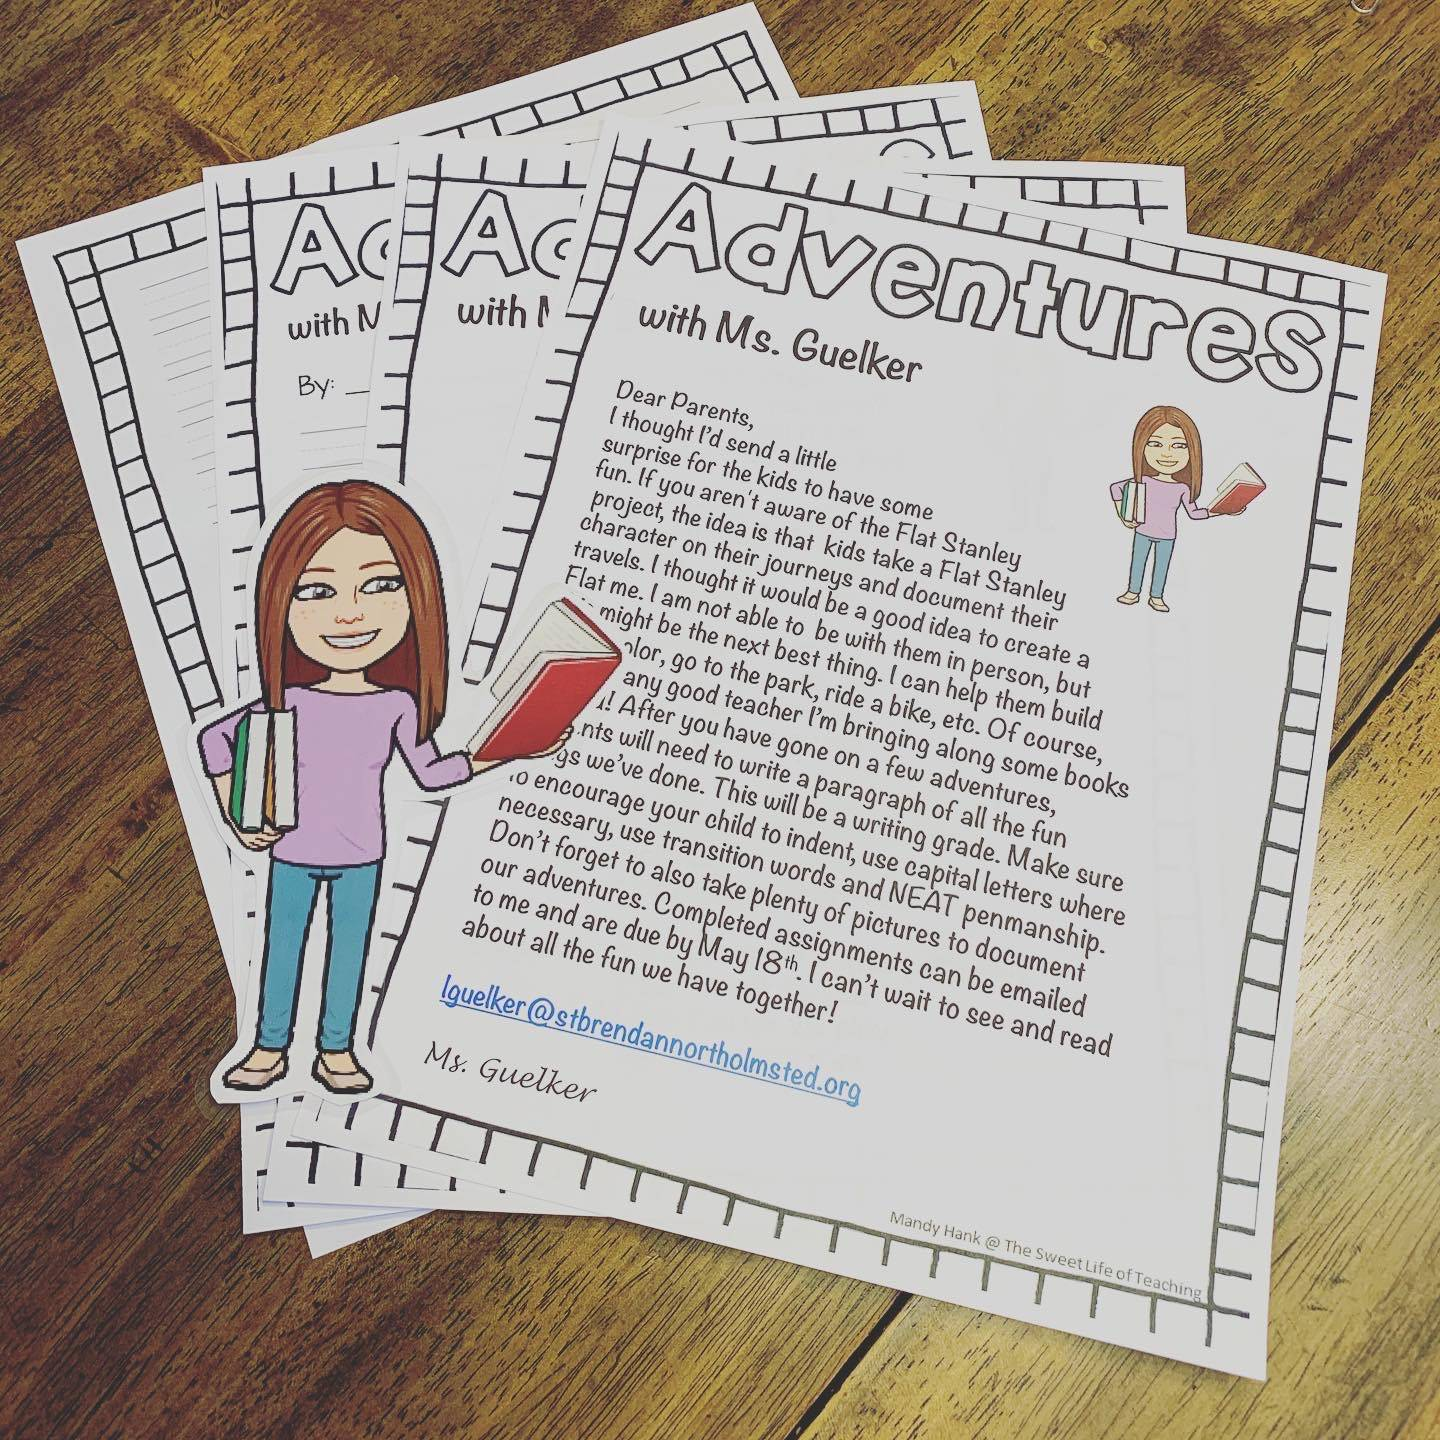 bitmoji photo of mrs guelker with photo of her 2nd grade adventure instructions